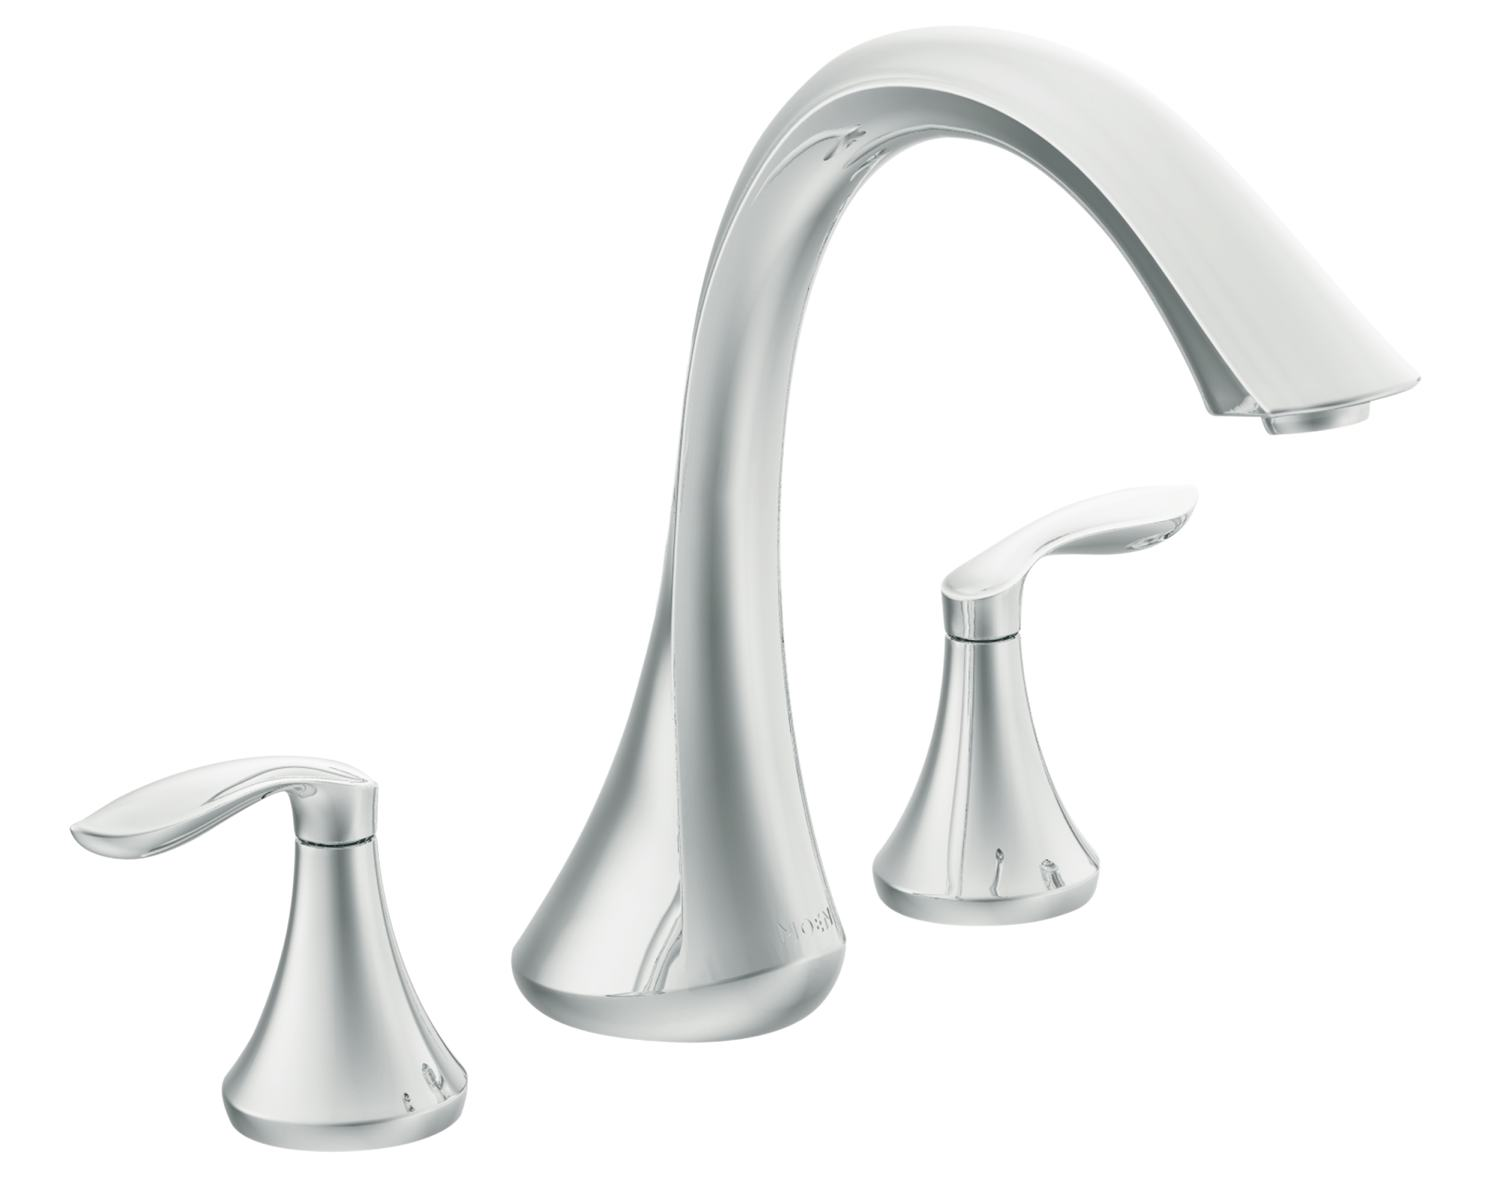 Moen T943 Eva Two Handle High Arc Roman Tub Faucet Without